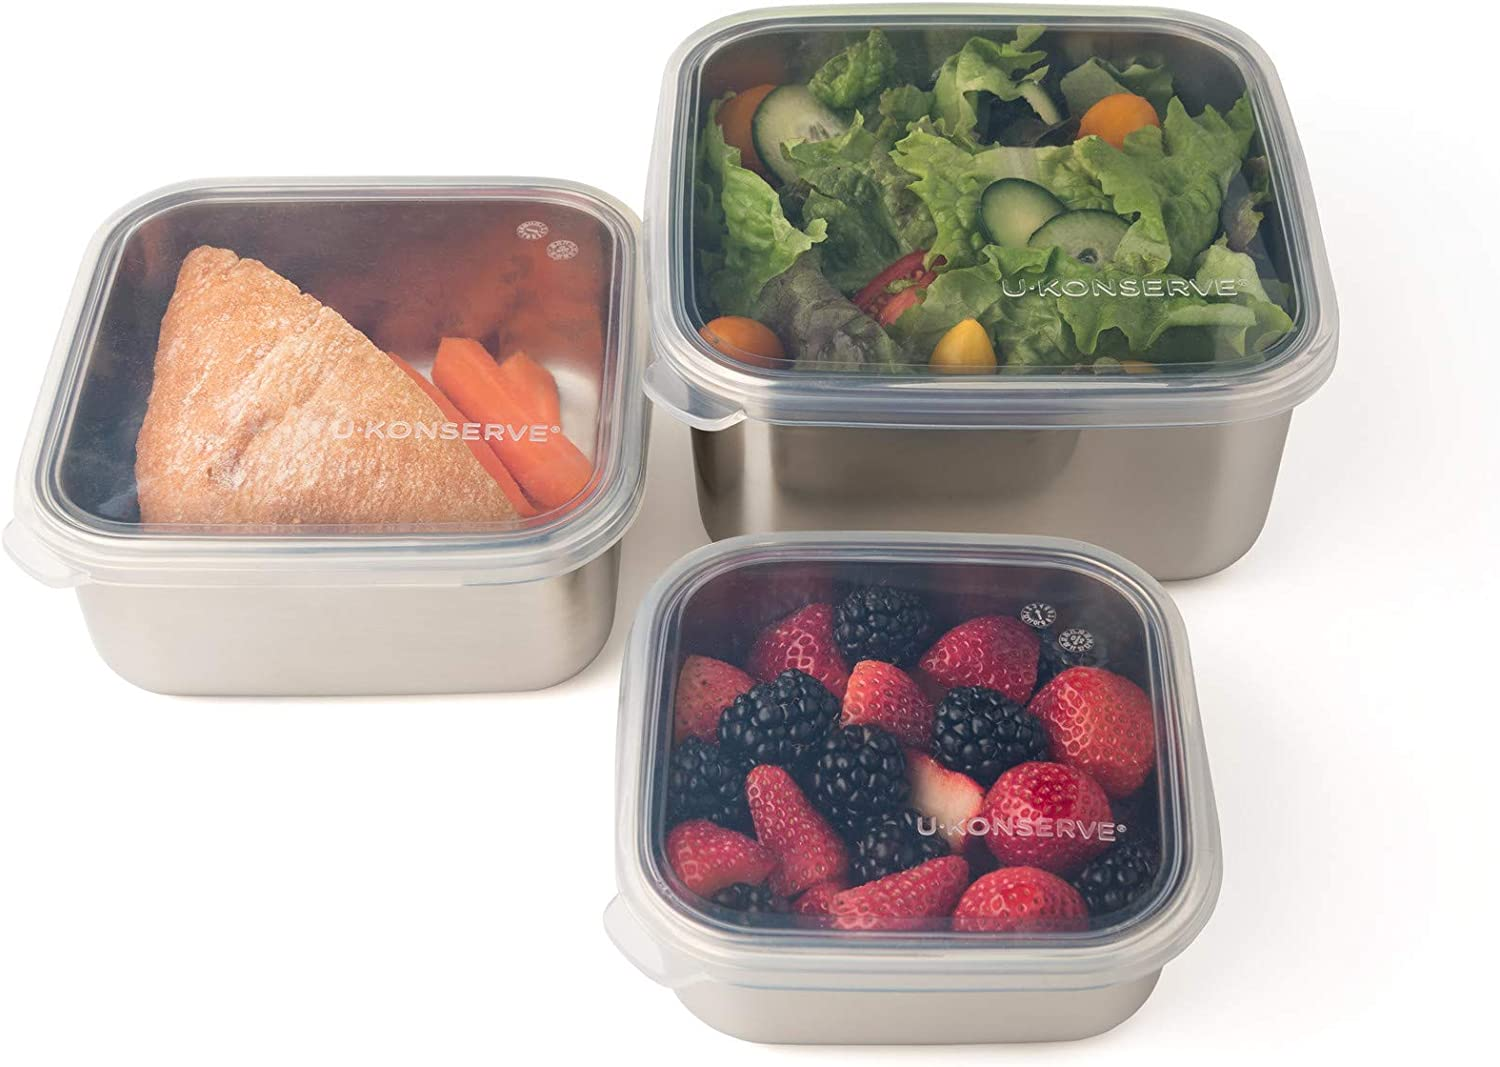 UKONSERVE To-Go Large Stainless Steel Container 50oz - Clear Silicone Lid